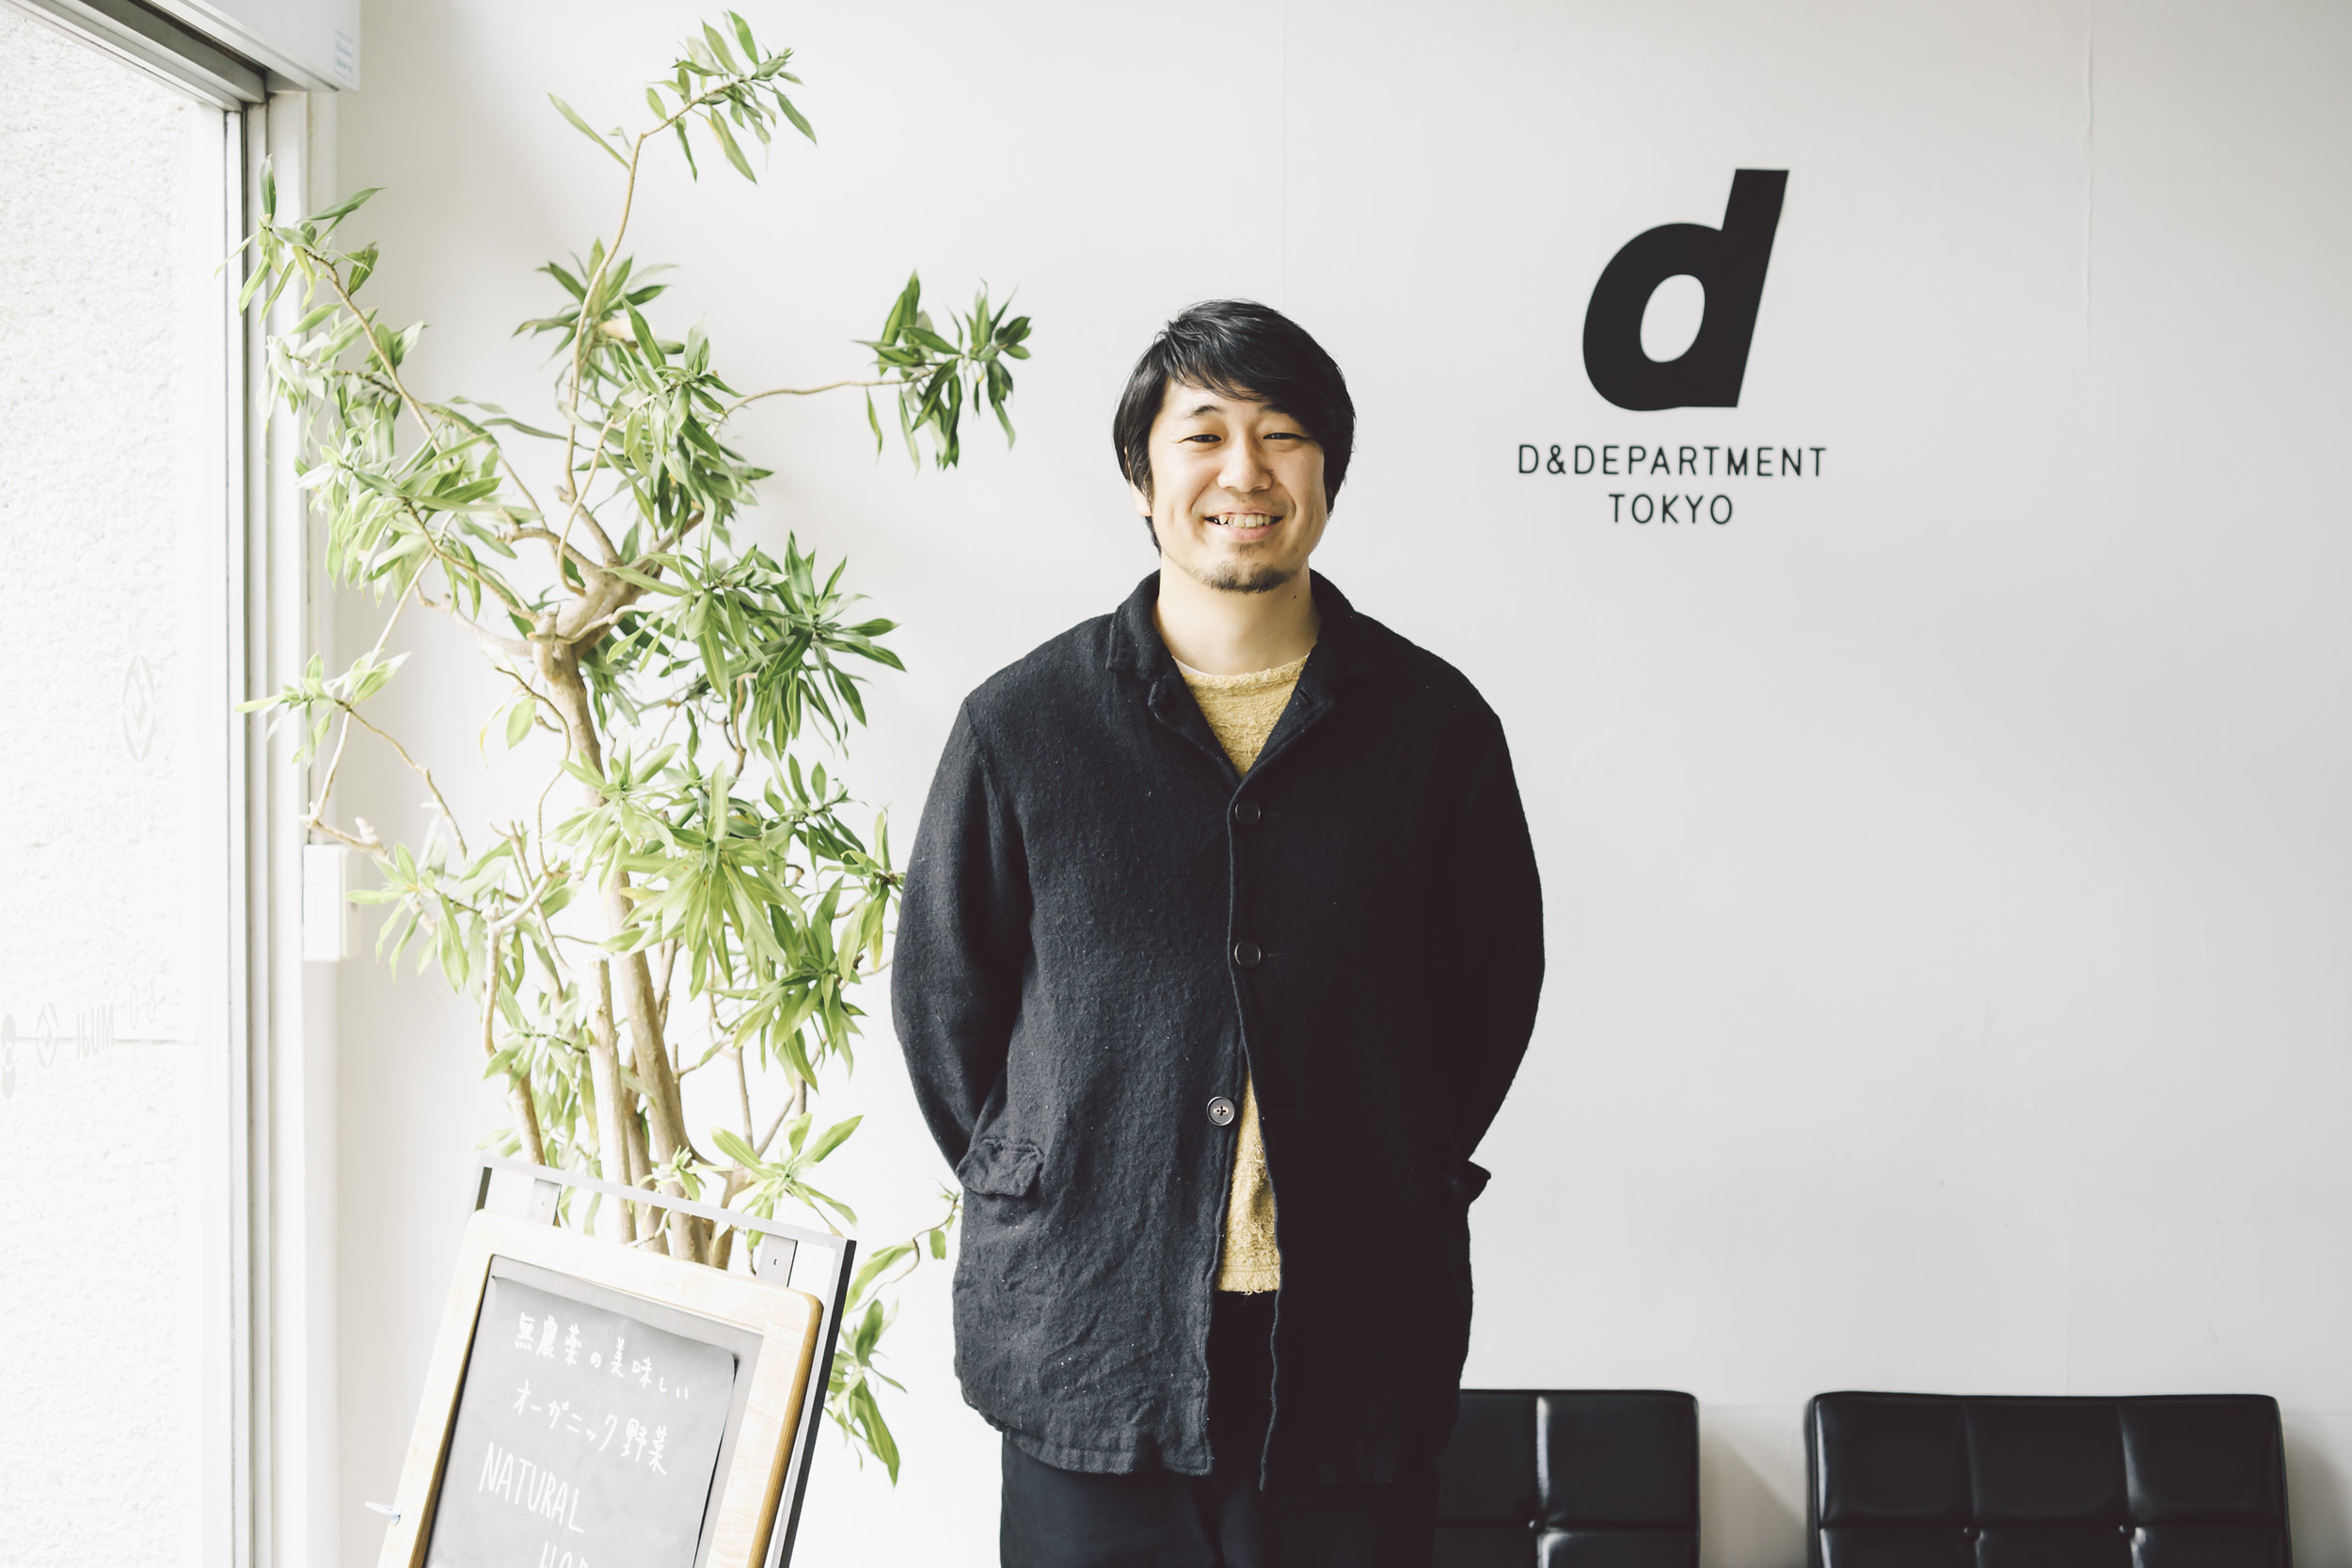 D&DEPARTMENT PROJECT取締役社長 相馬夕輝